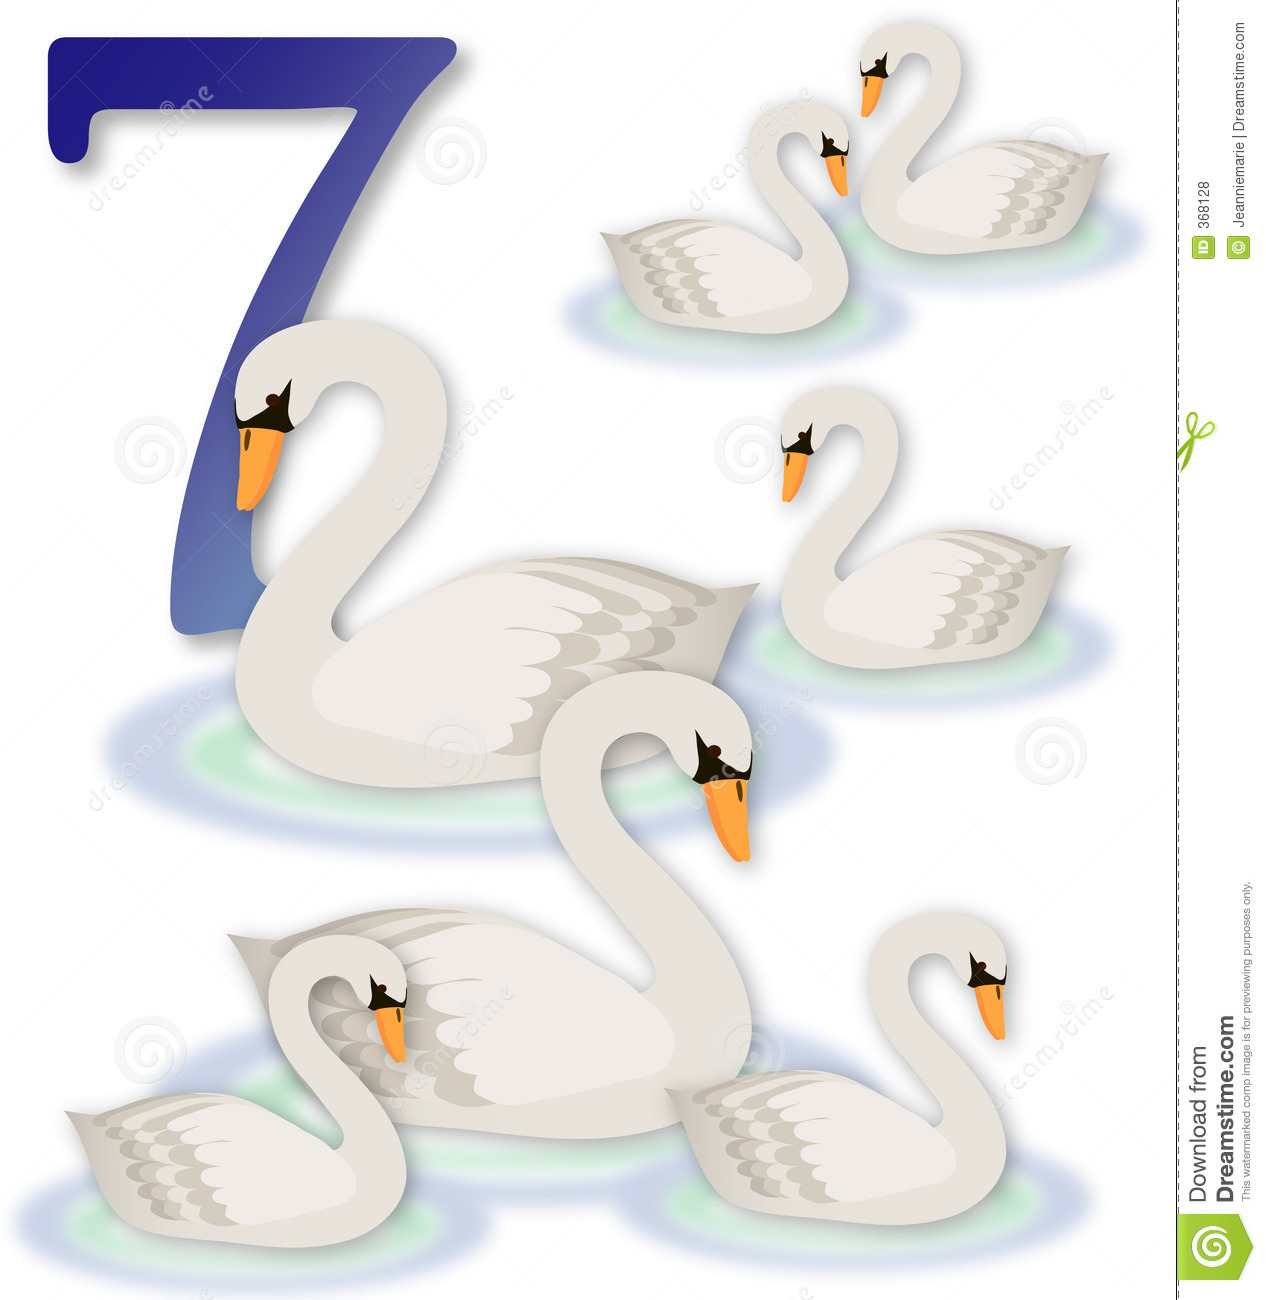 12 Days Of Christmas: 7 Swans A Swimming Royalty Free Stock Photos ...